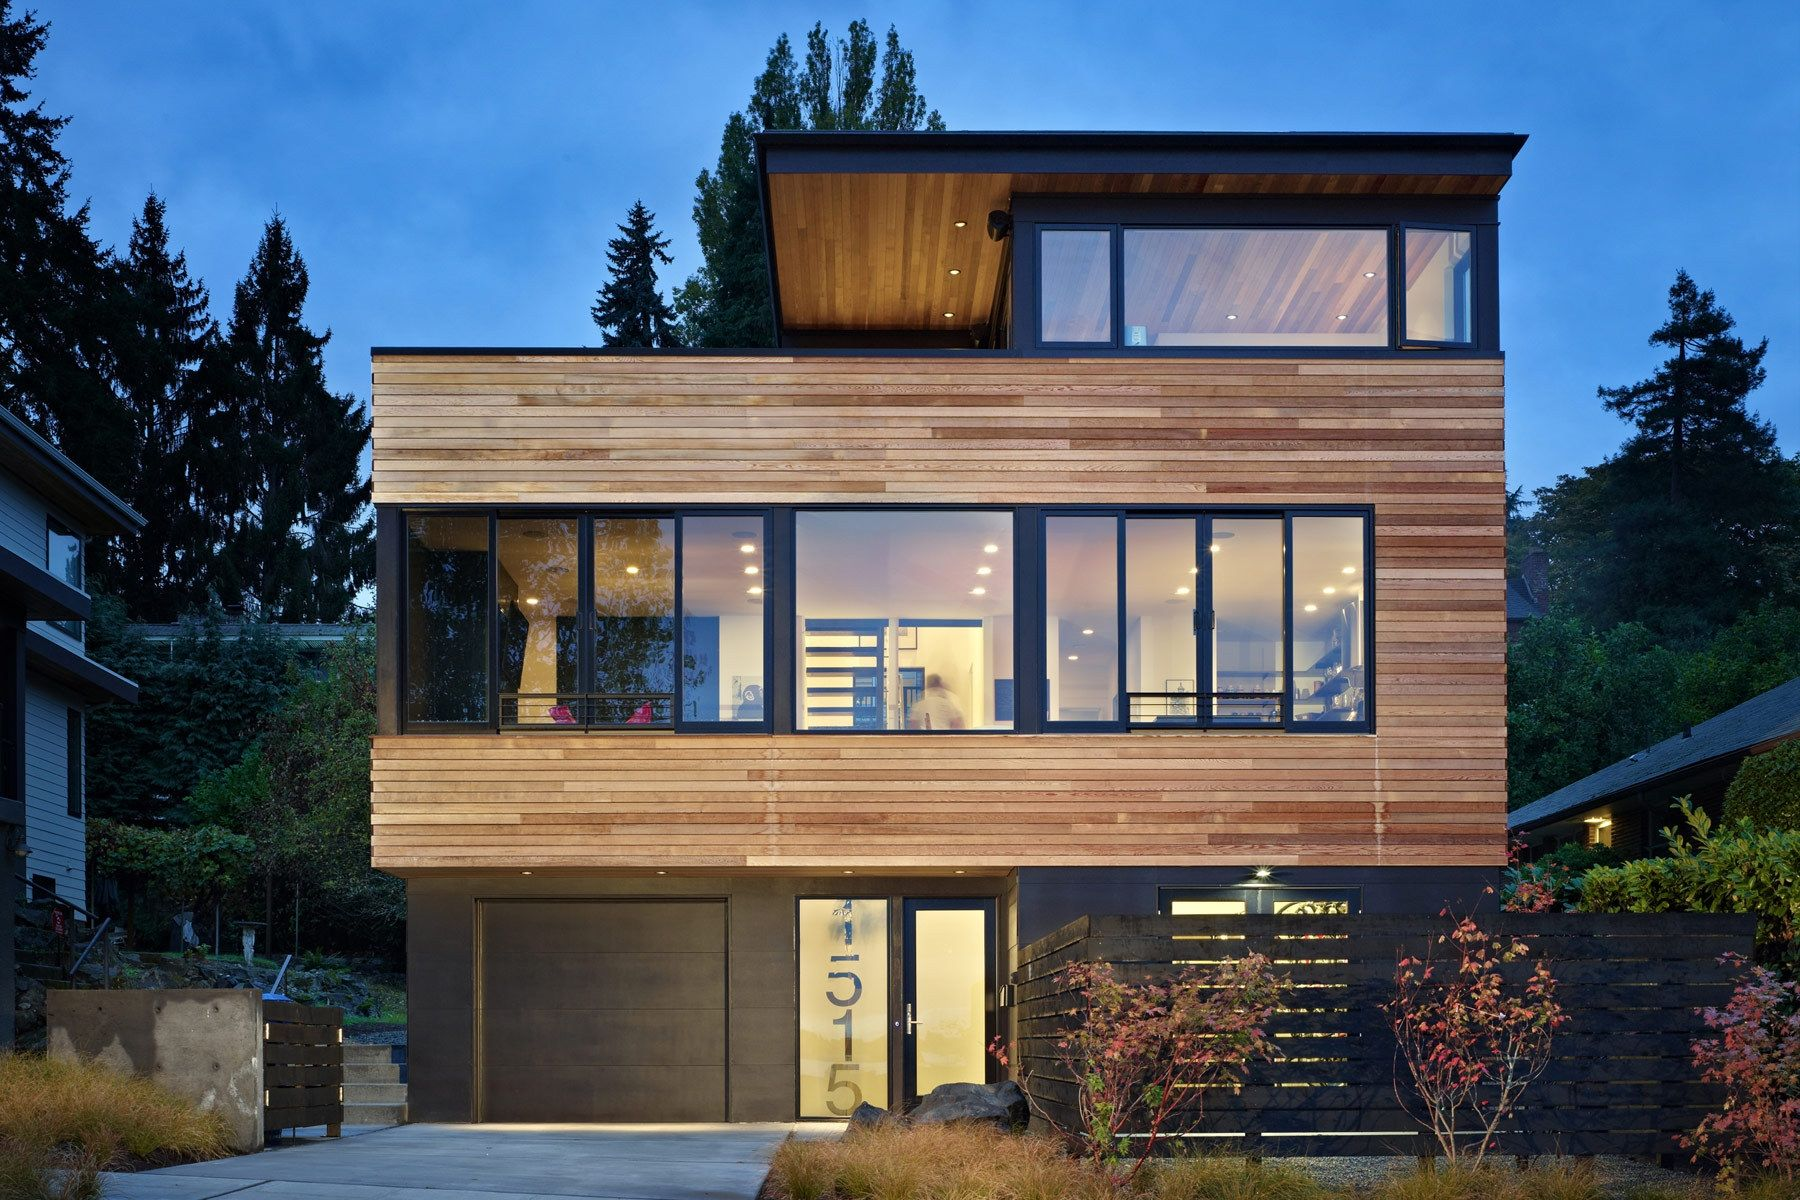 Architecture modern seattle home ranch house designs for Home architectures